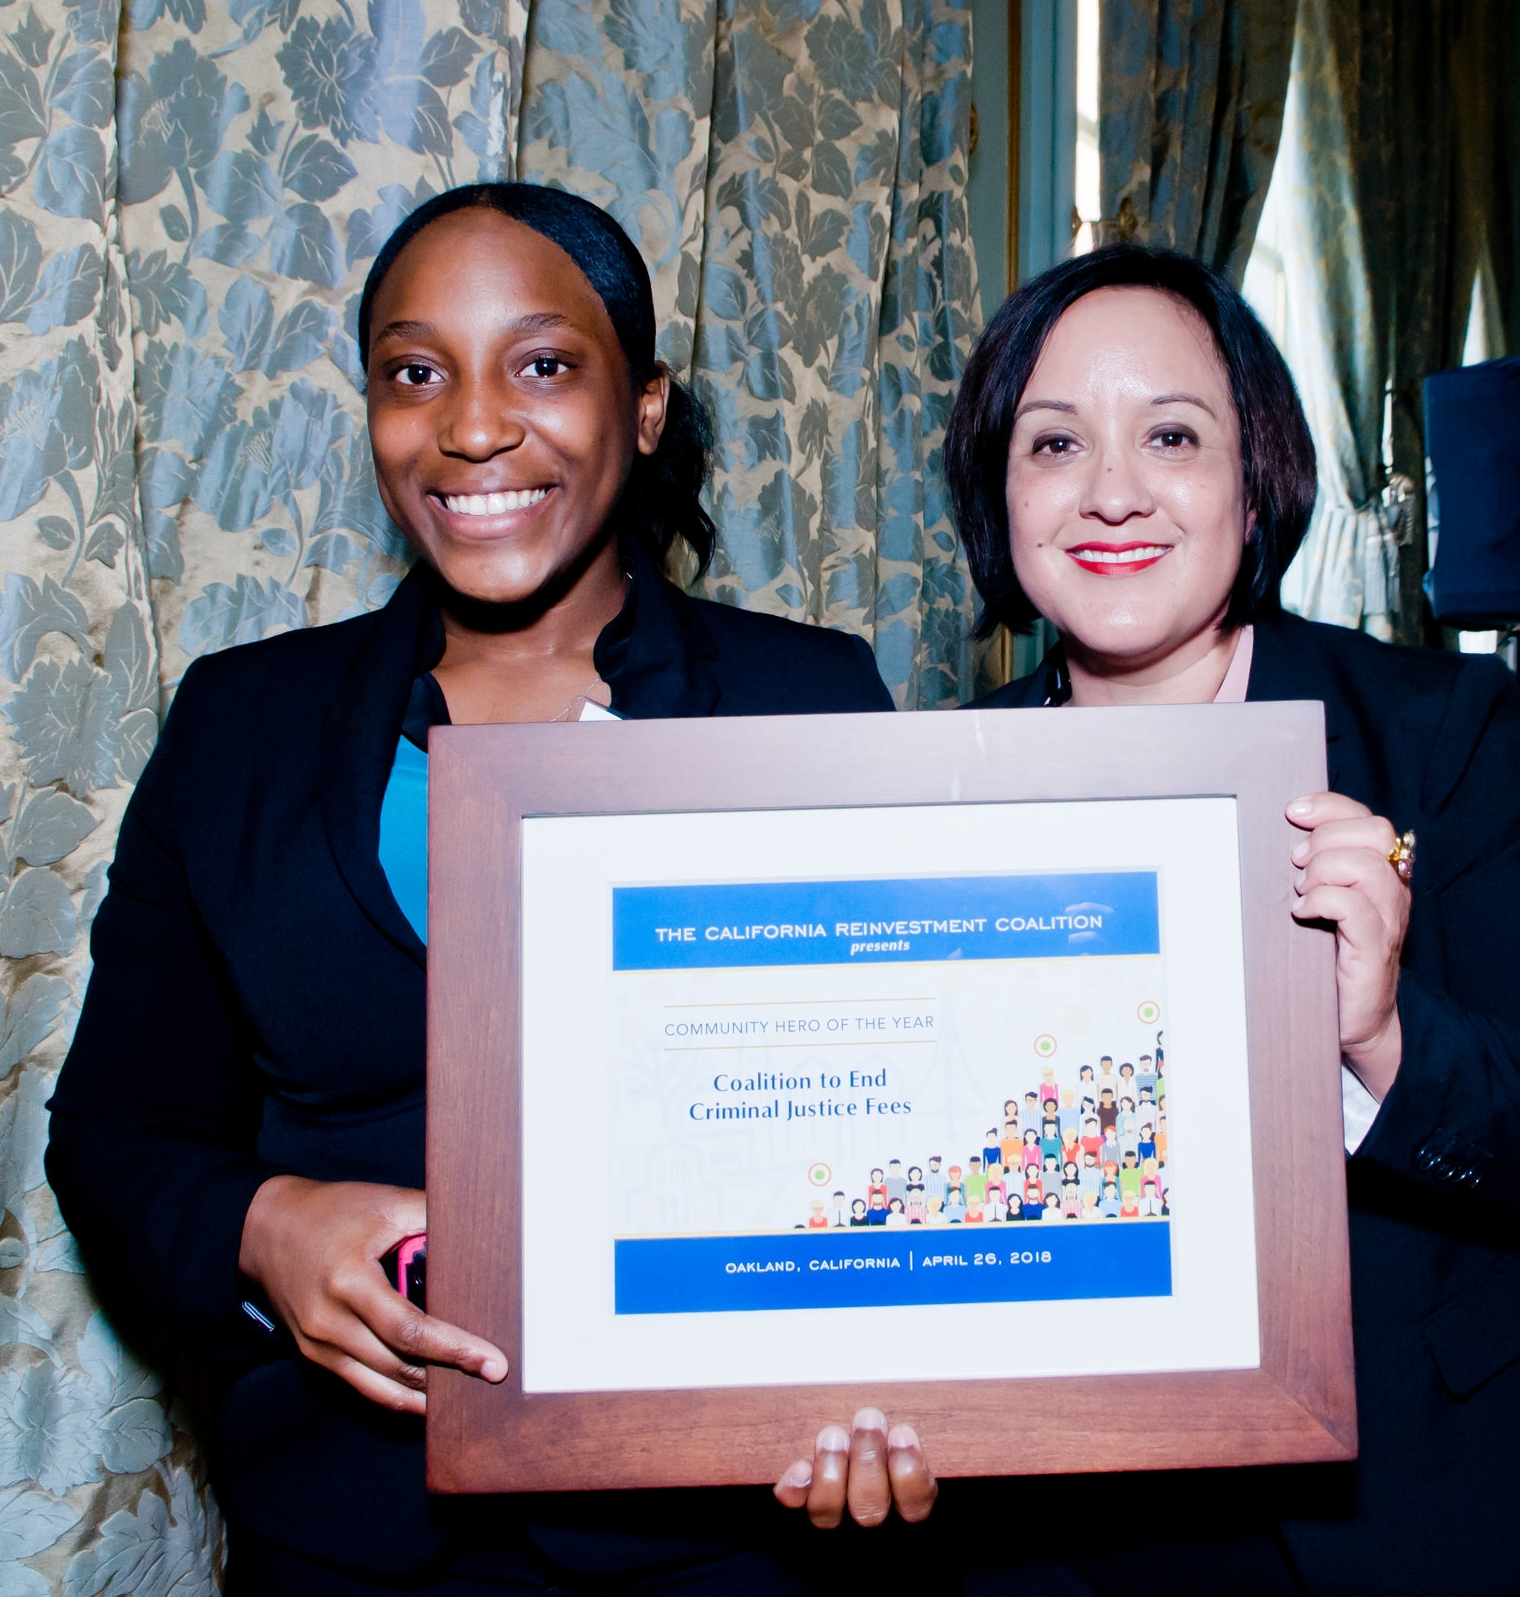 - D'Ana (left) accepts an award on behalf of the SB 190 coalition from the CA Reinvestment Coalition on April 26th, 2018.